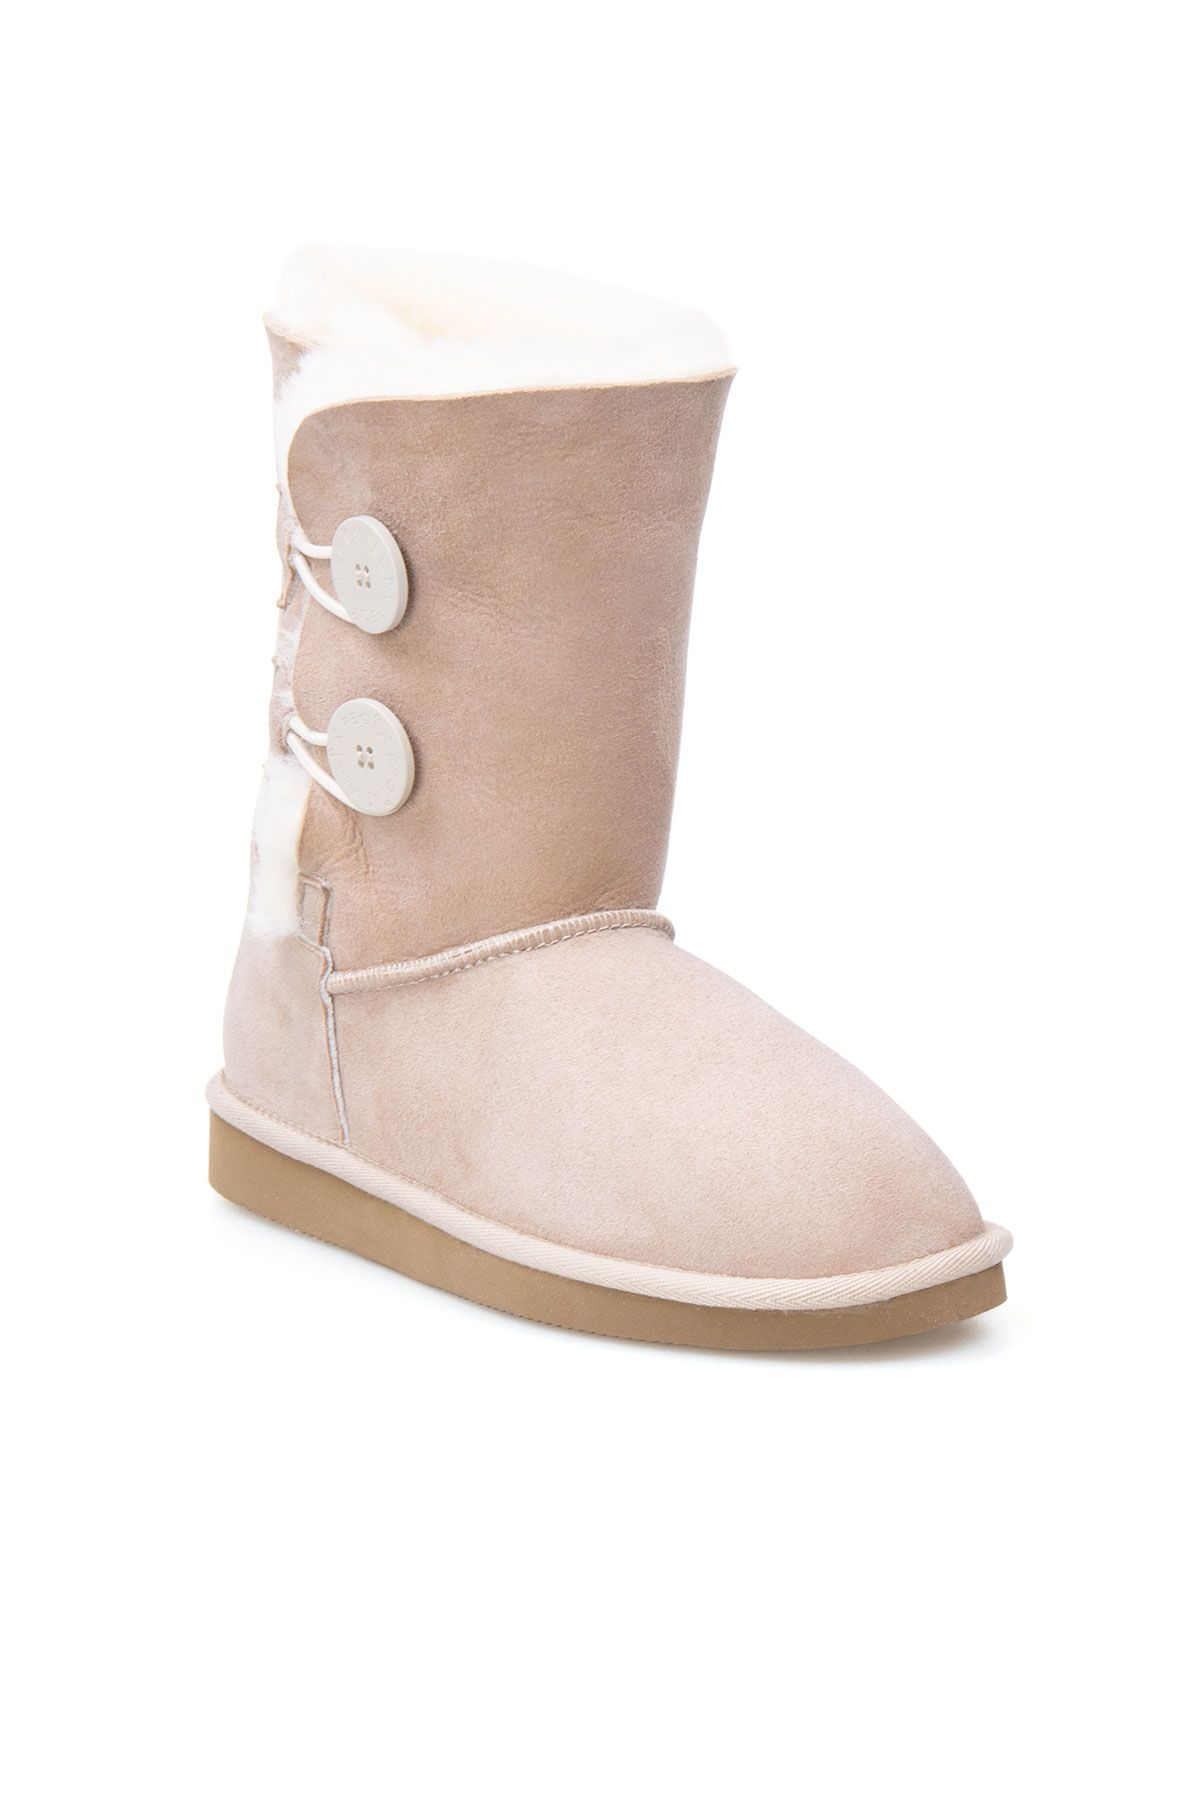 Pegia Women Boots From Genuine Suede And Sheepskin Fur Decorated With Snaps Beige